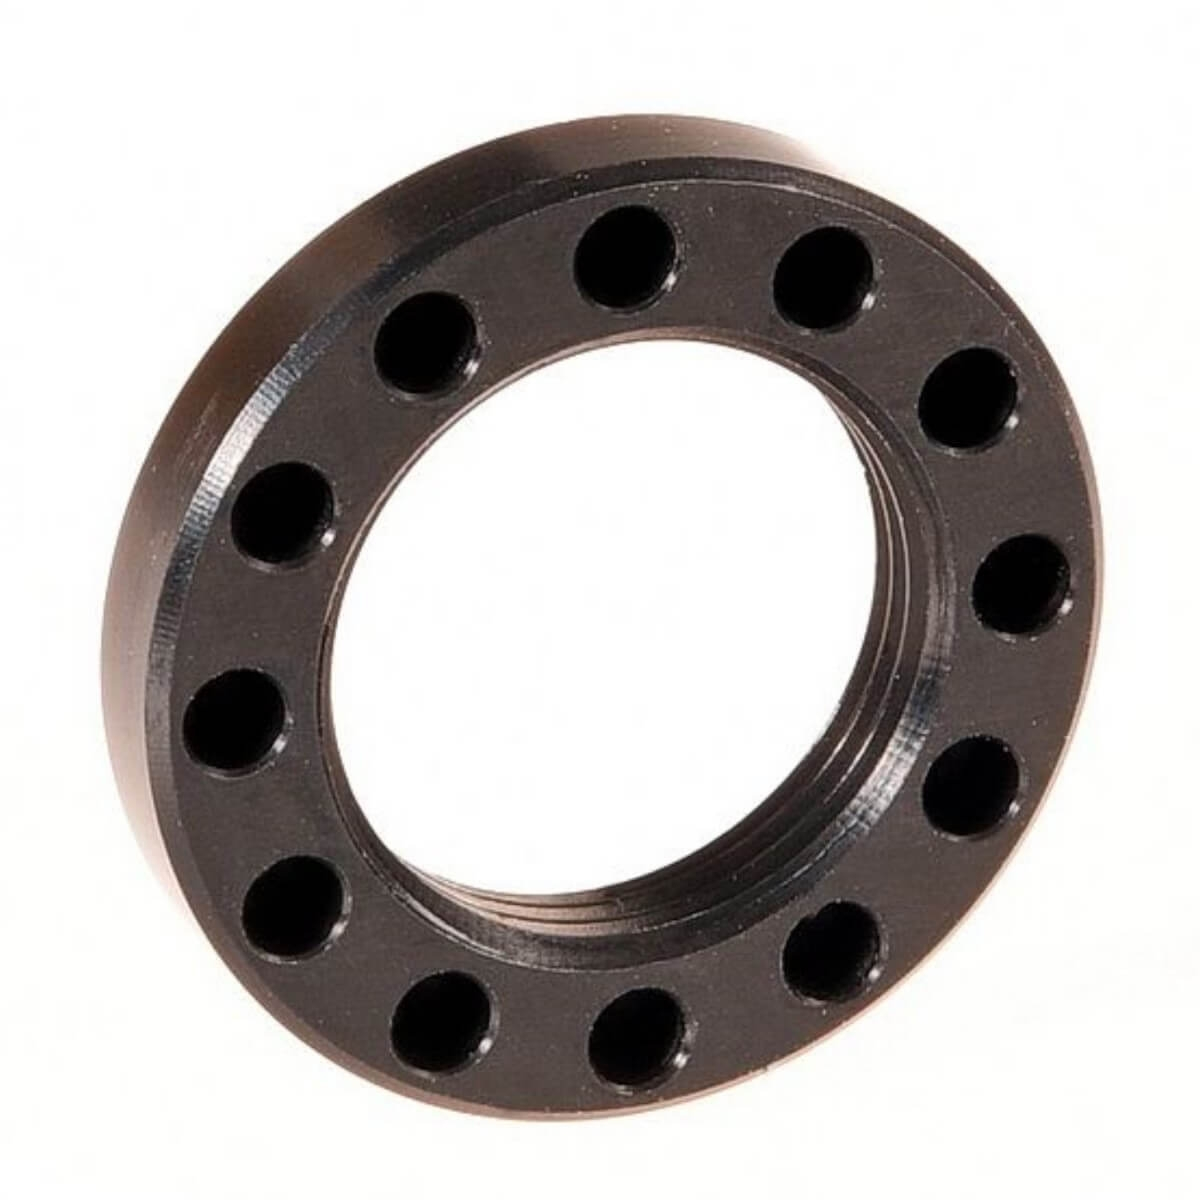 S21 Lock Nut for KTM derailleur hangers - D476, D477